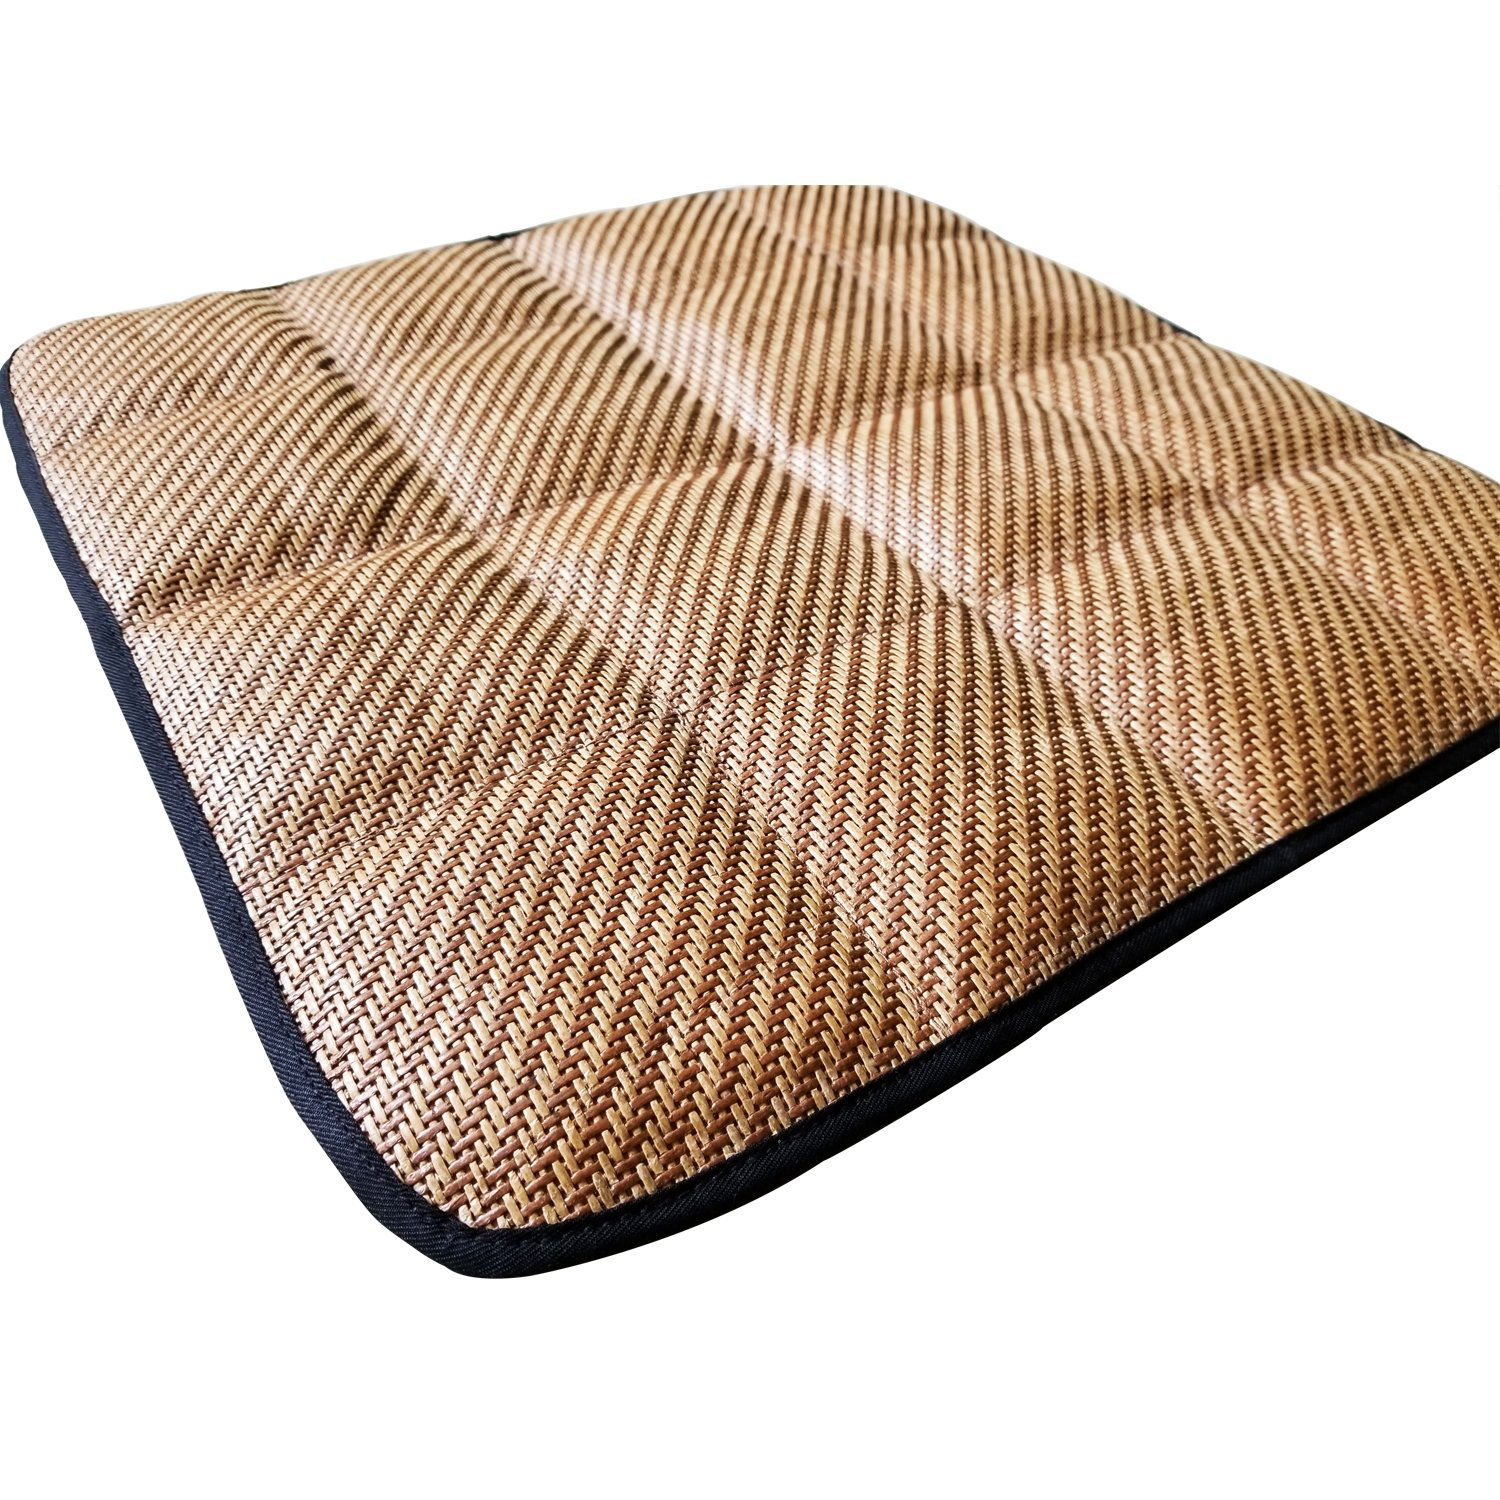 DGQ Natural Bamboo Charcoal Non-Slip Breathable Deodorizer Seat Cushion - Home Office Car Chair Cover Pad Mat (Cream) Leateck car cushion002